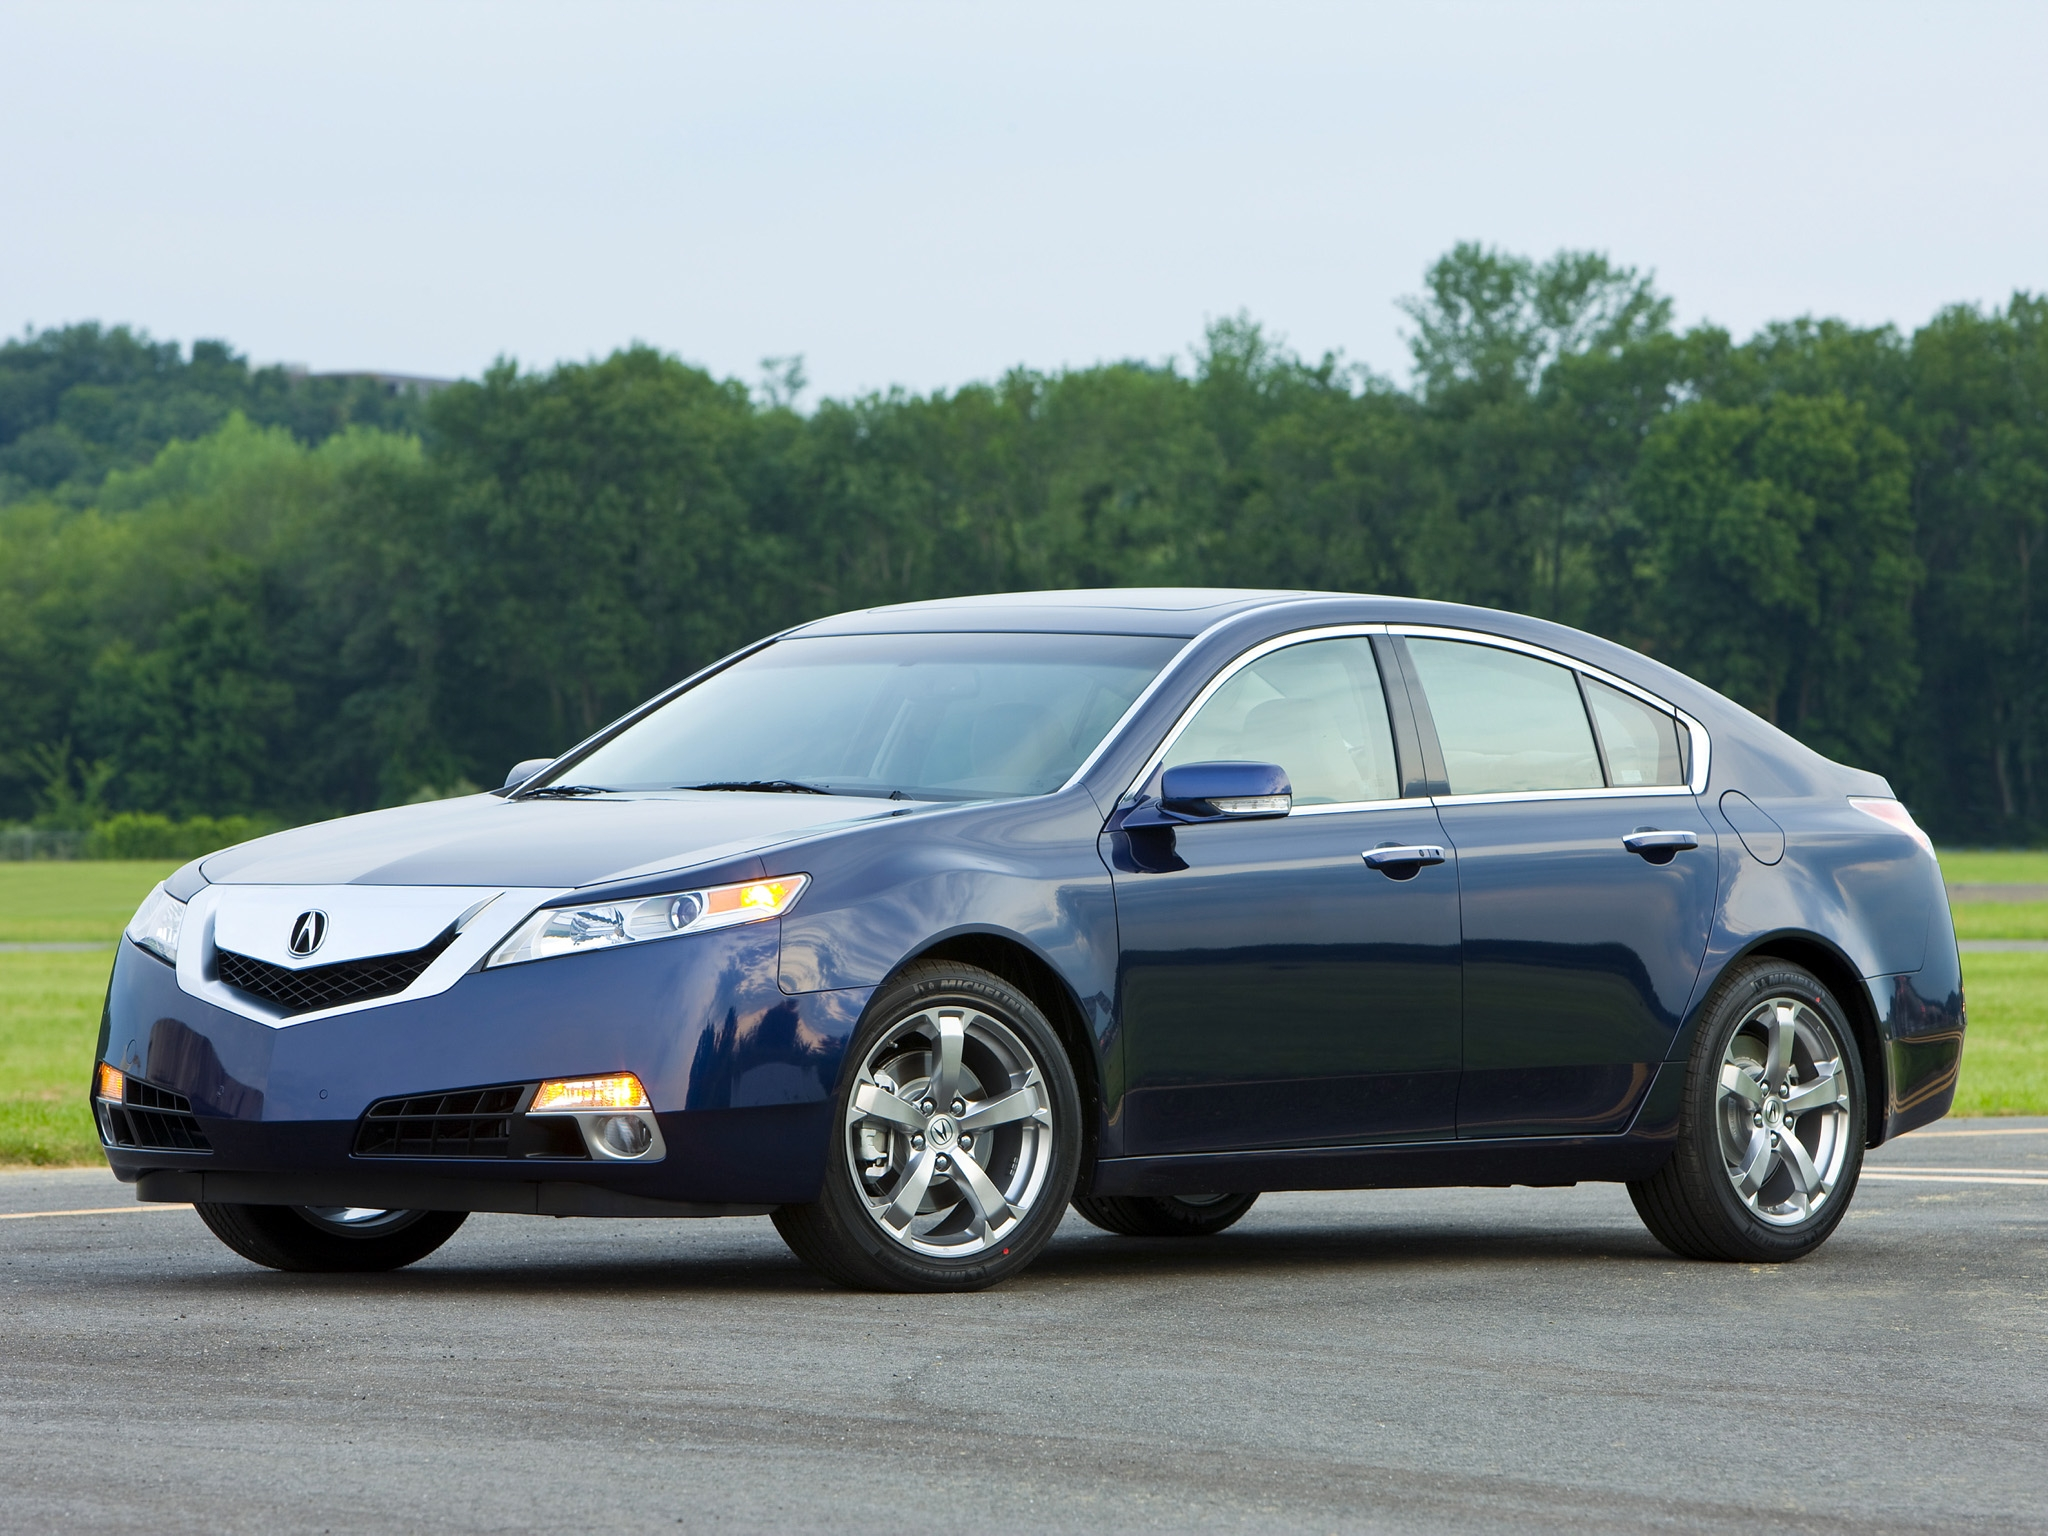 80956 download wallpaper Cars, Acura, Tl, 2008, Side View, Style, Auto, Akura, Nature, Sky, Grass, Trees screensavers and pictures for free